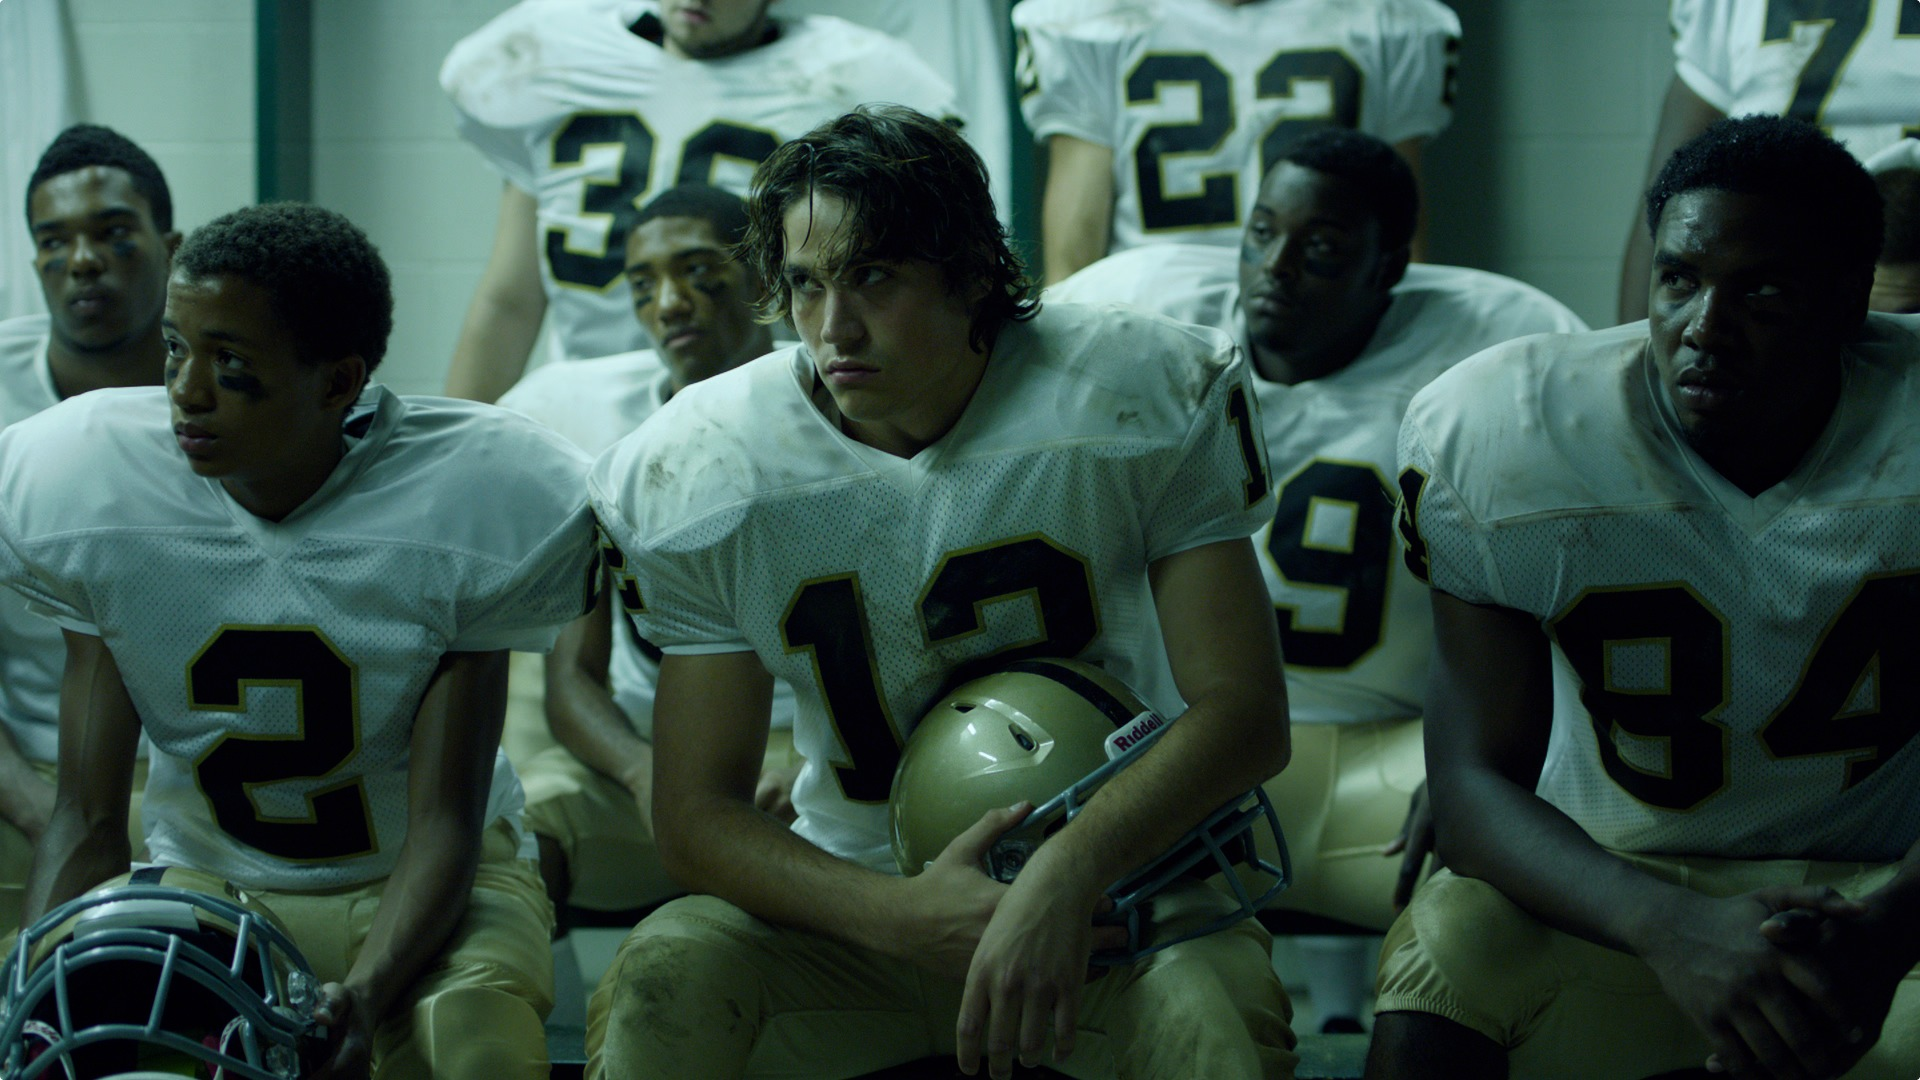 UNDERDOGSDirected by Doug Dearth, Cinematography by Sean Conaty